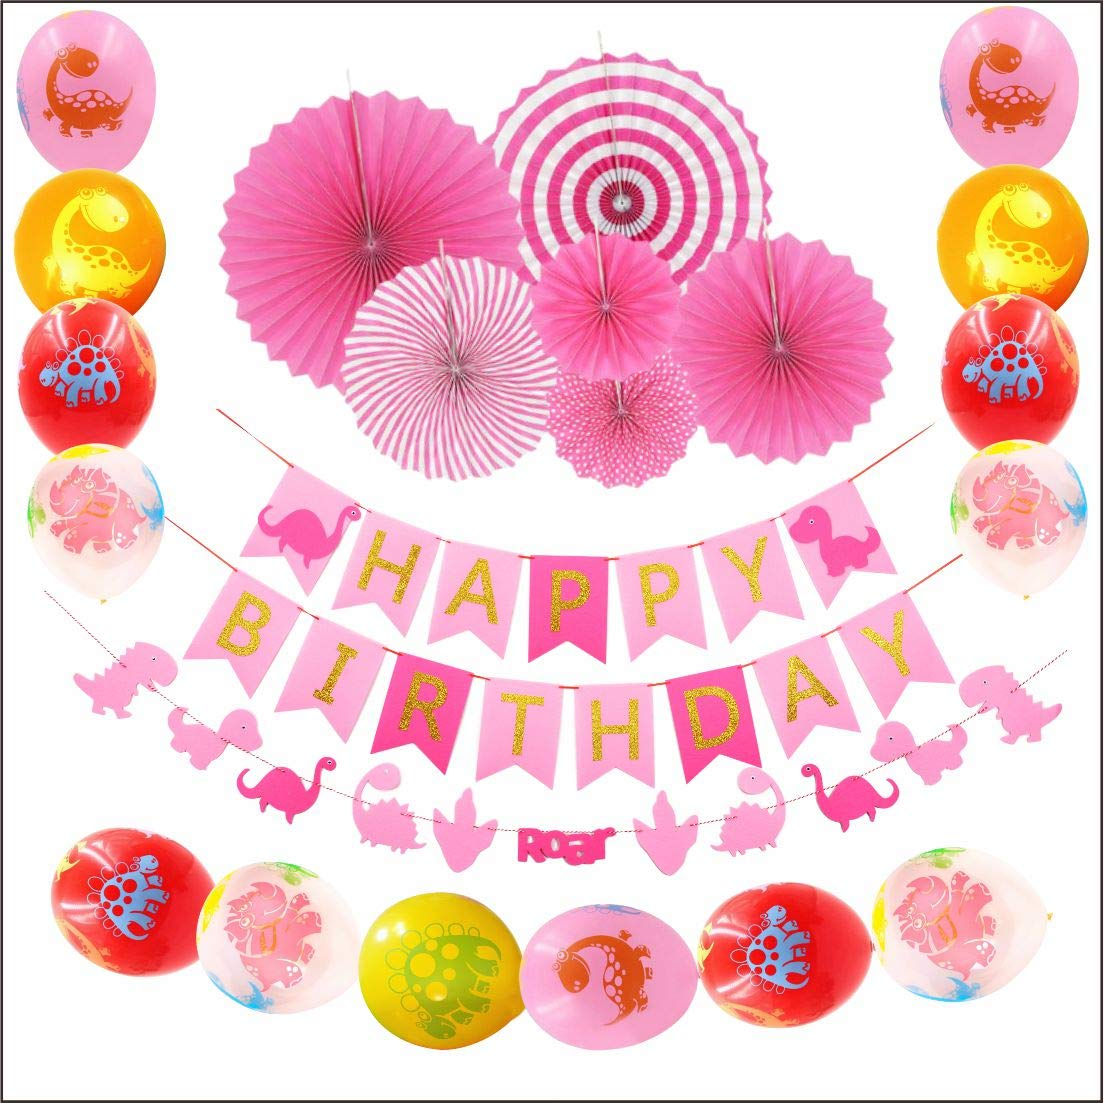 e6f61a95 Dinosaur Party Decorations for Baby Girls-1 Happy Birthday Banner, 1 Dino-mite  Garland,6 Pink Paper Fans, 12 Dino Balloons-Birthday Supplies and Favors  for ...